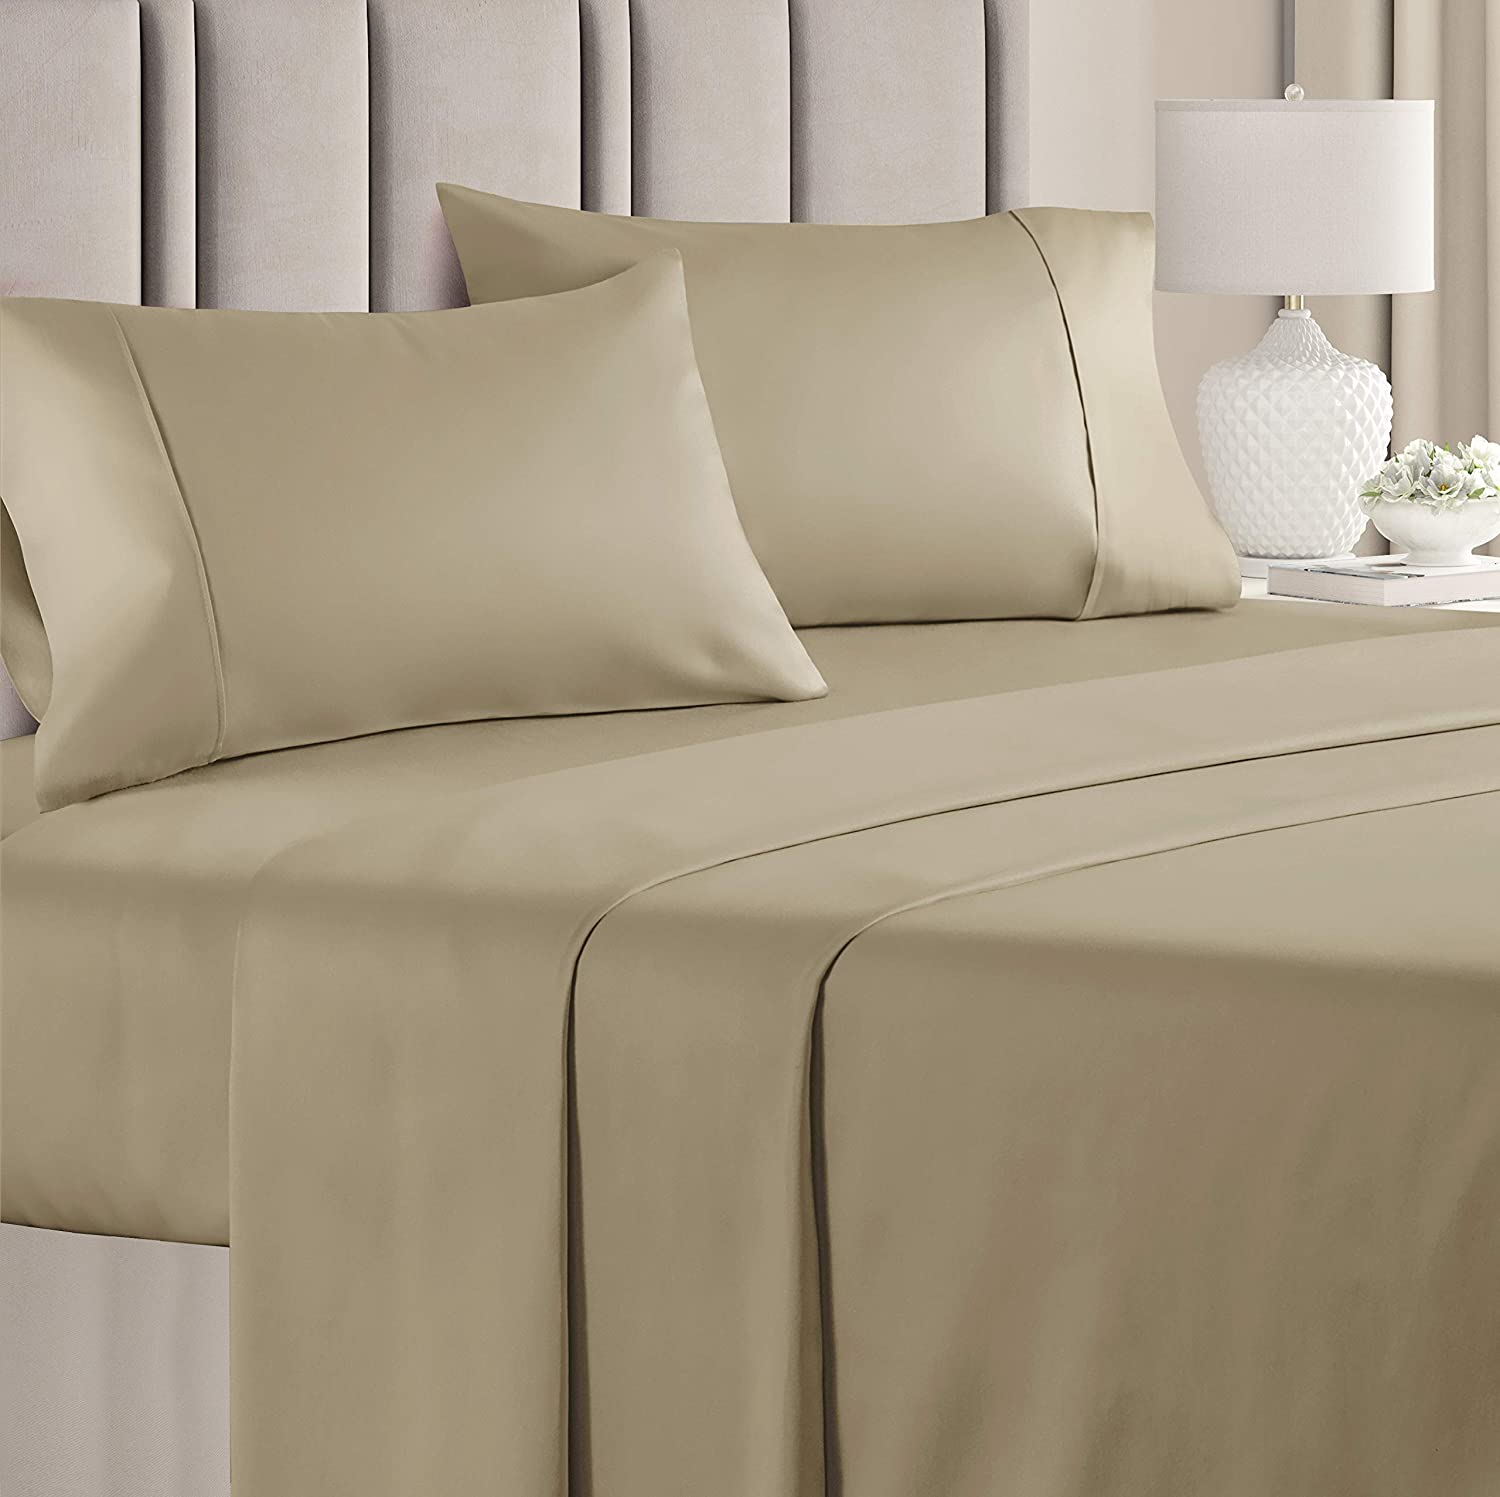 Queen CGK Unlimited Beige Cotton 400 Thread Count Bed Sheet for Sensitive Skin